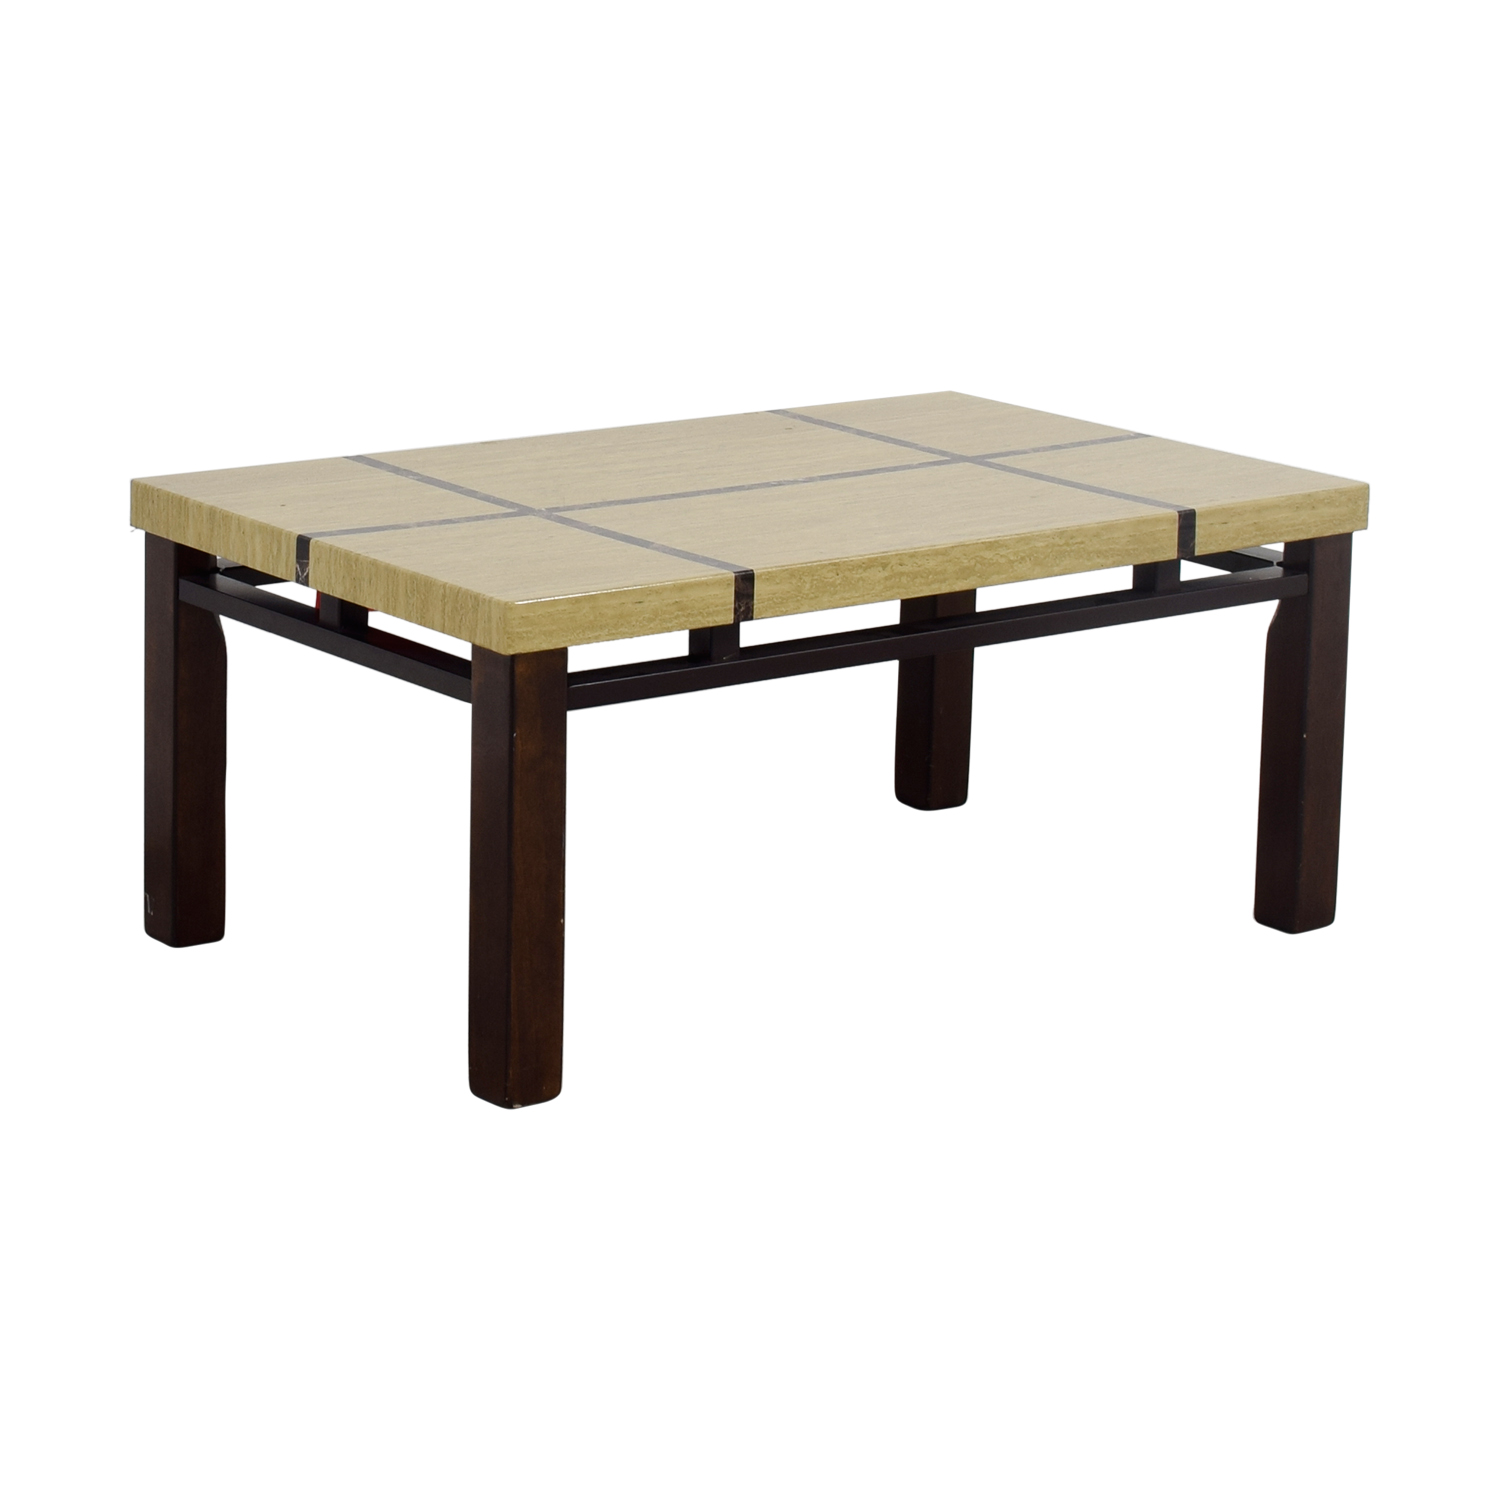 Natural and Dark Wood Coffee Table dimensions